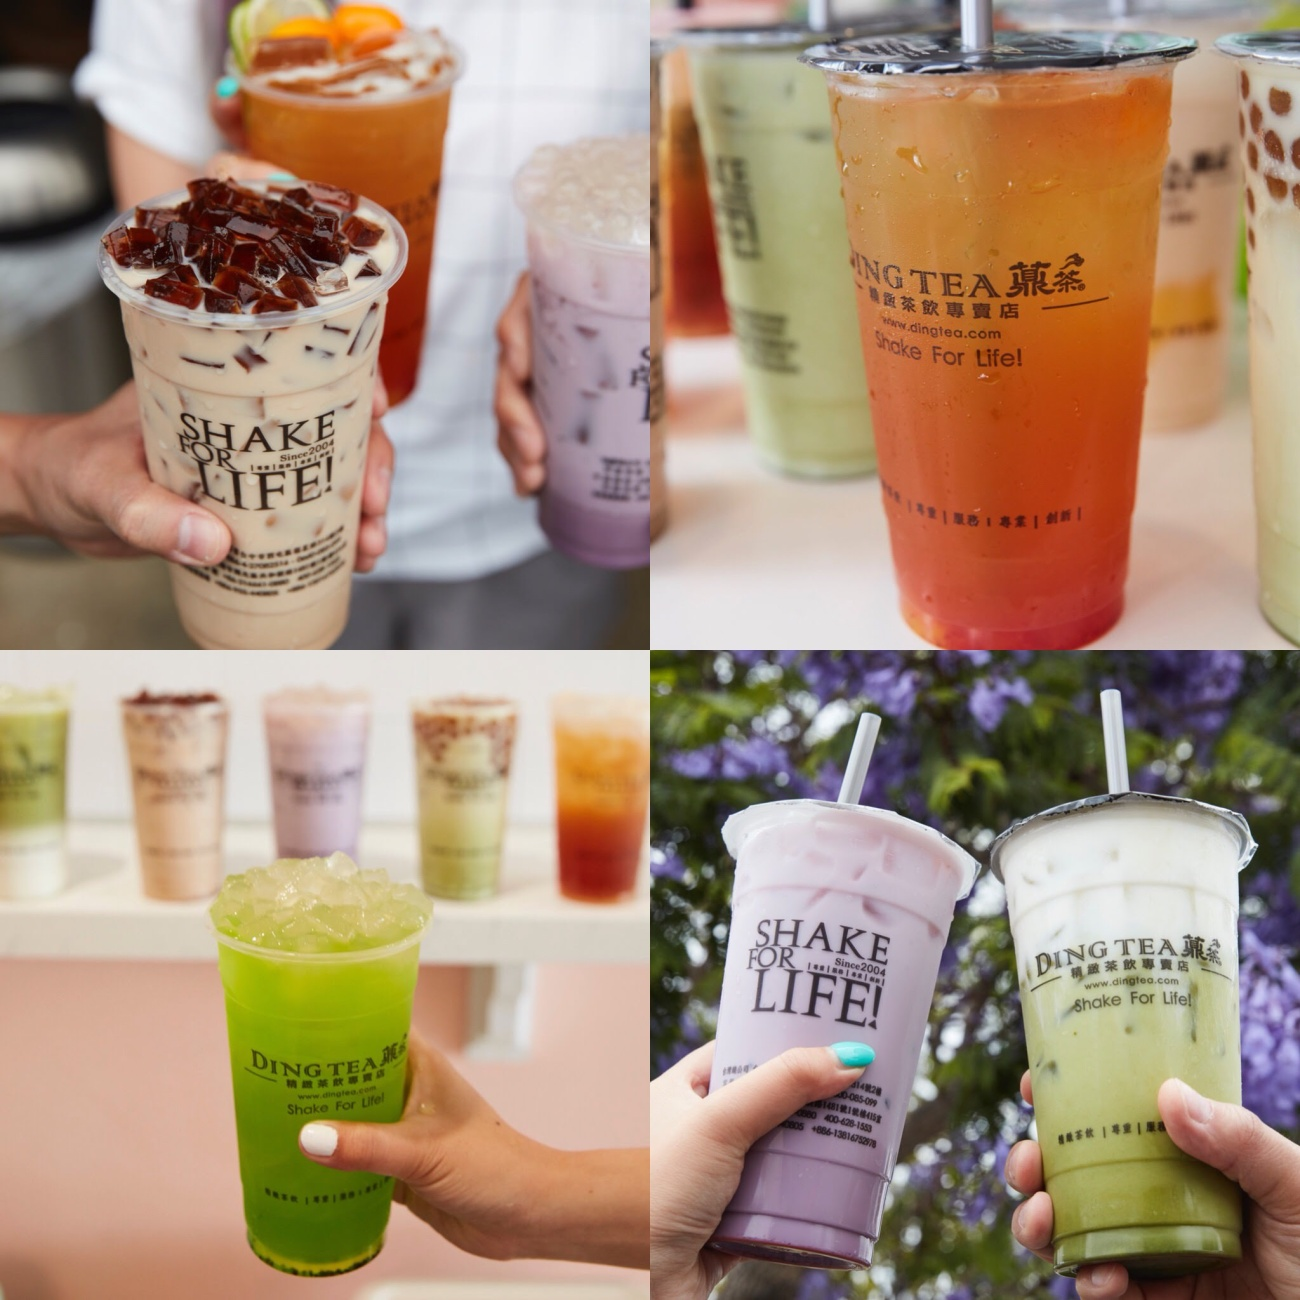 Ding-Tea-Taiwanese-Boba-Bubble-Tea-New-Grand-Opening-Orange-County-Hacienda-Heights-Rowland-Specials-Promo